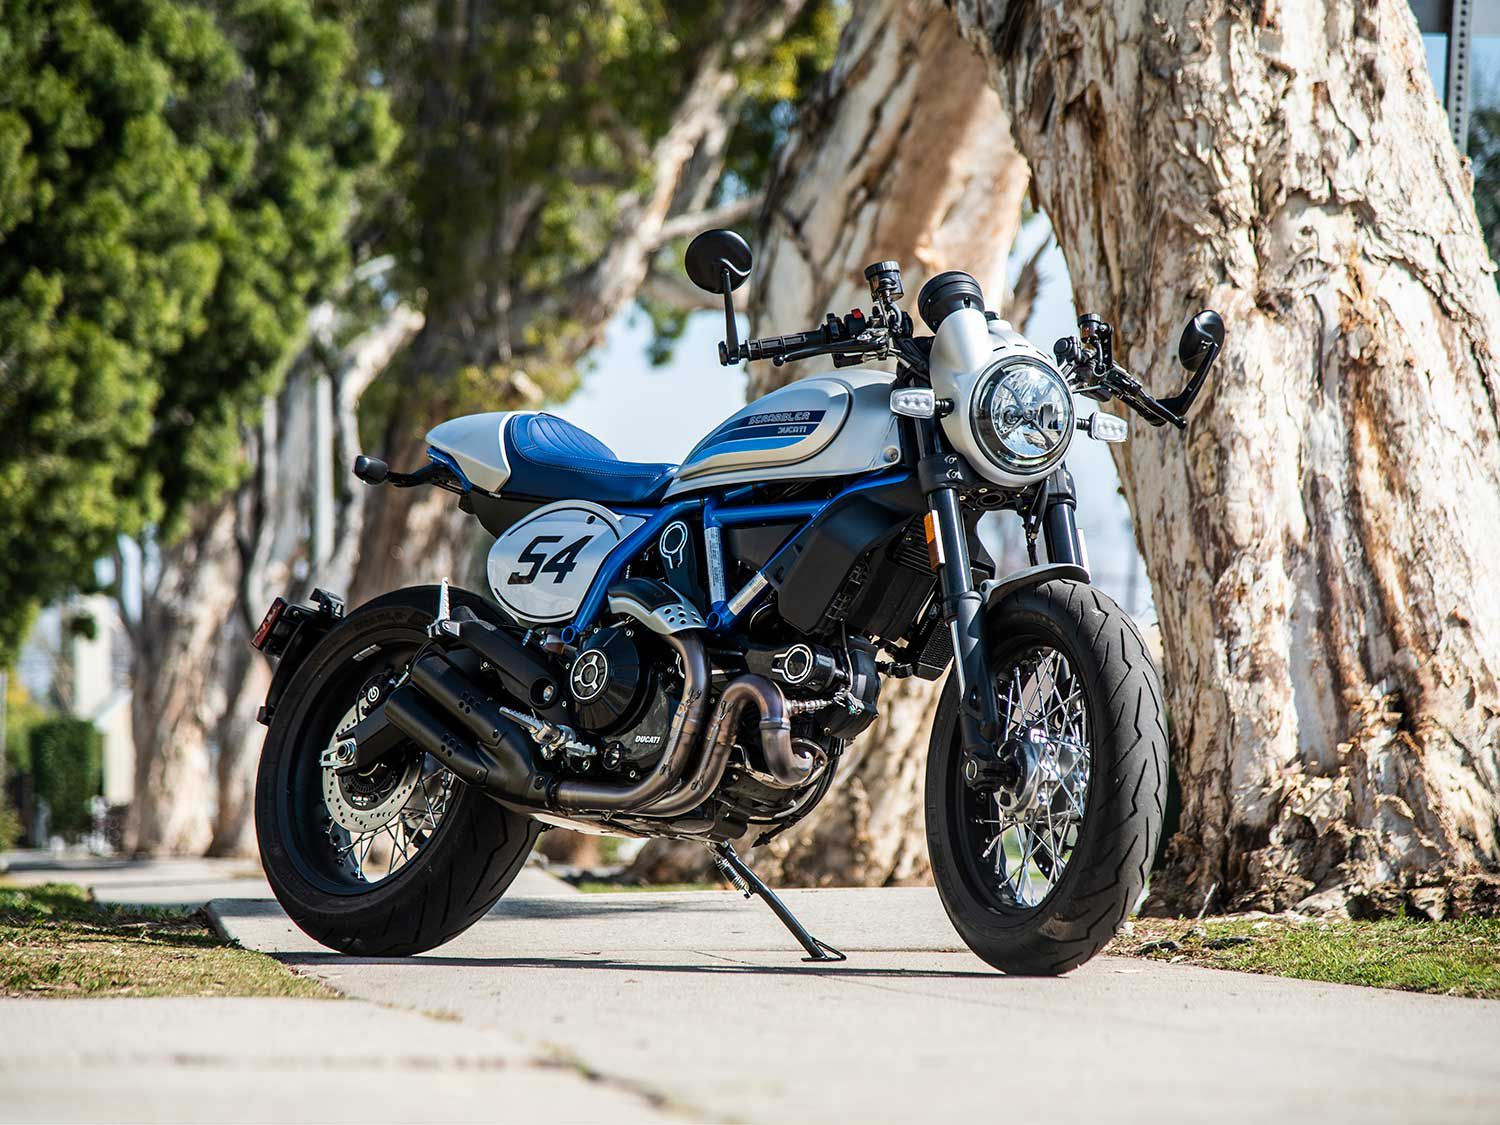 Arguably the coolest looking bike in the Scrambler lineup, the Café looks fast standing still.